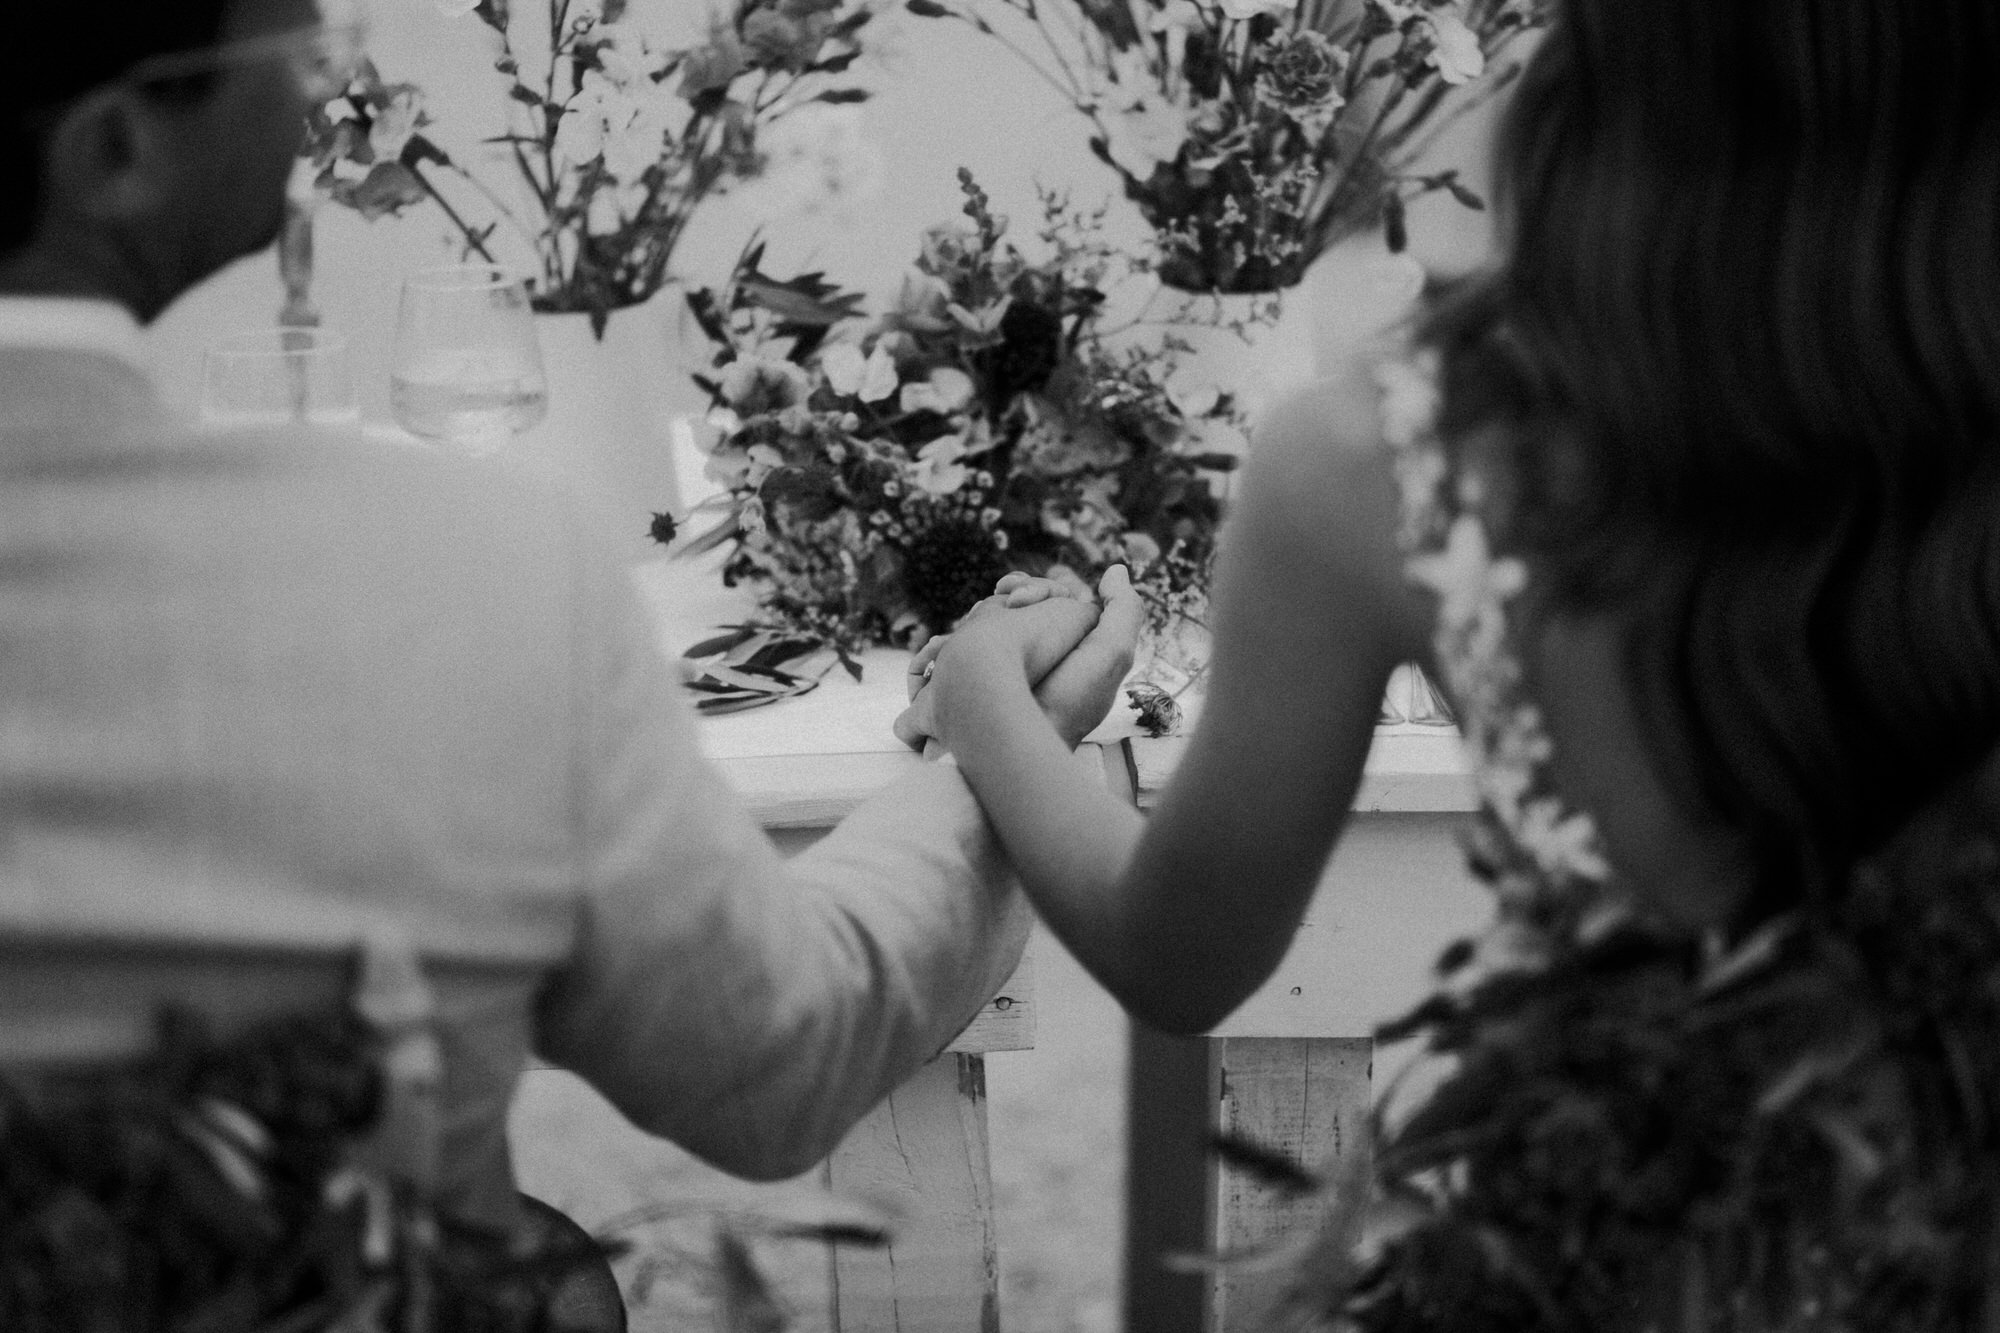 masseria-potenti-wedding-photographer60.jpg